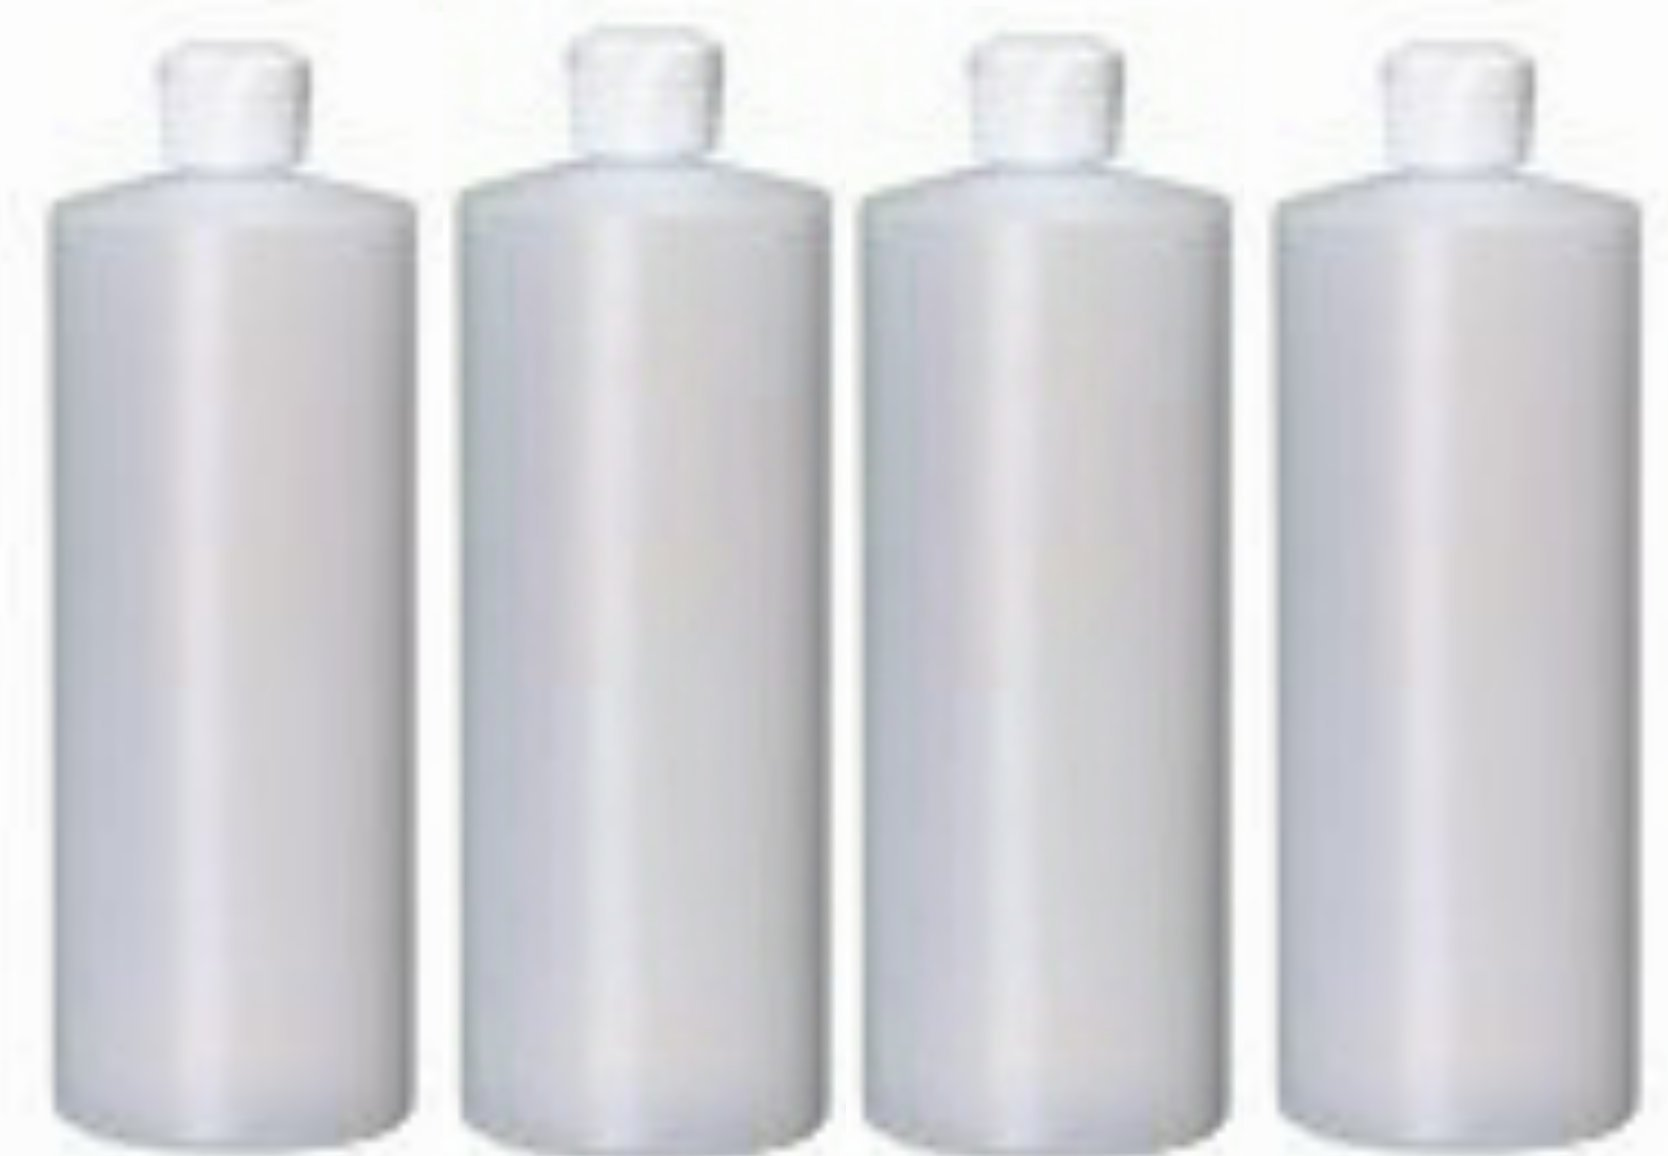 4-32 Oz HDPE Plastic Bottles with Squeeze Top (4 Count) Reusable